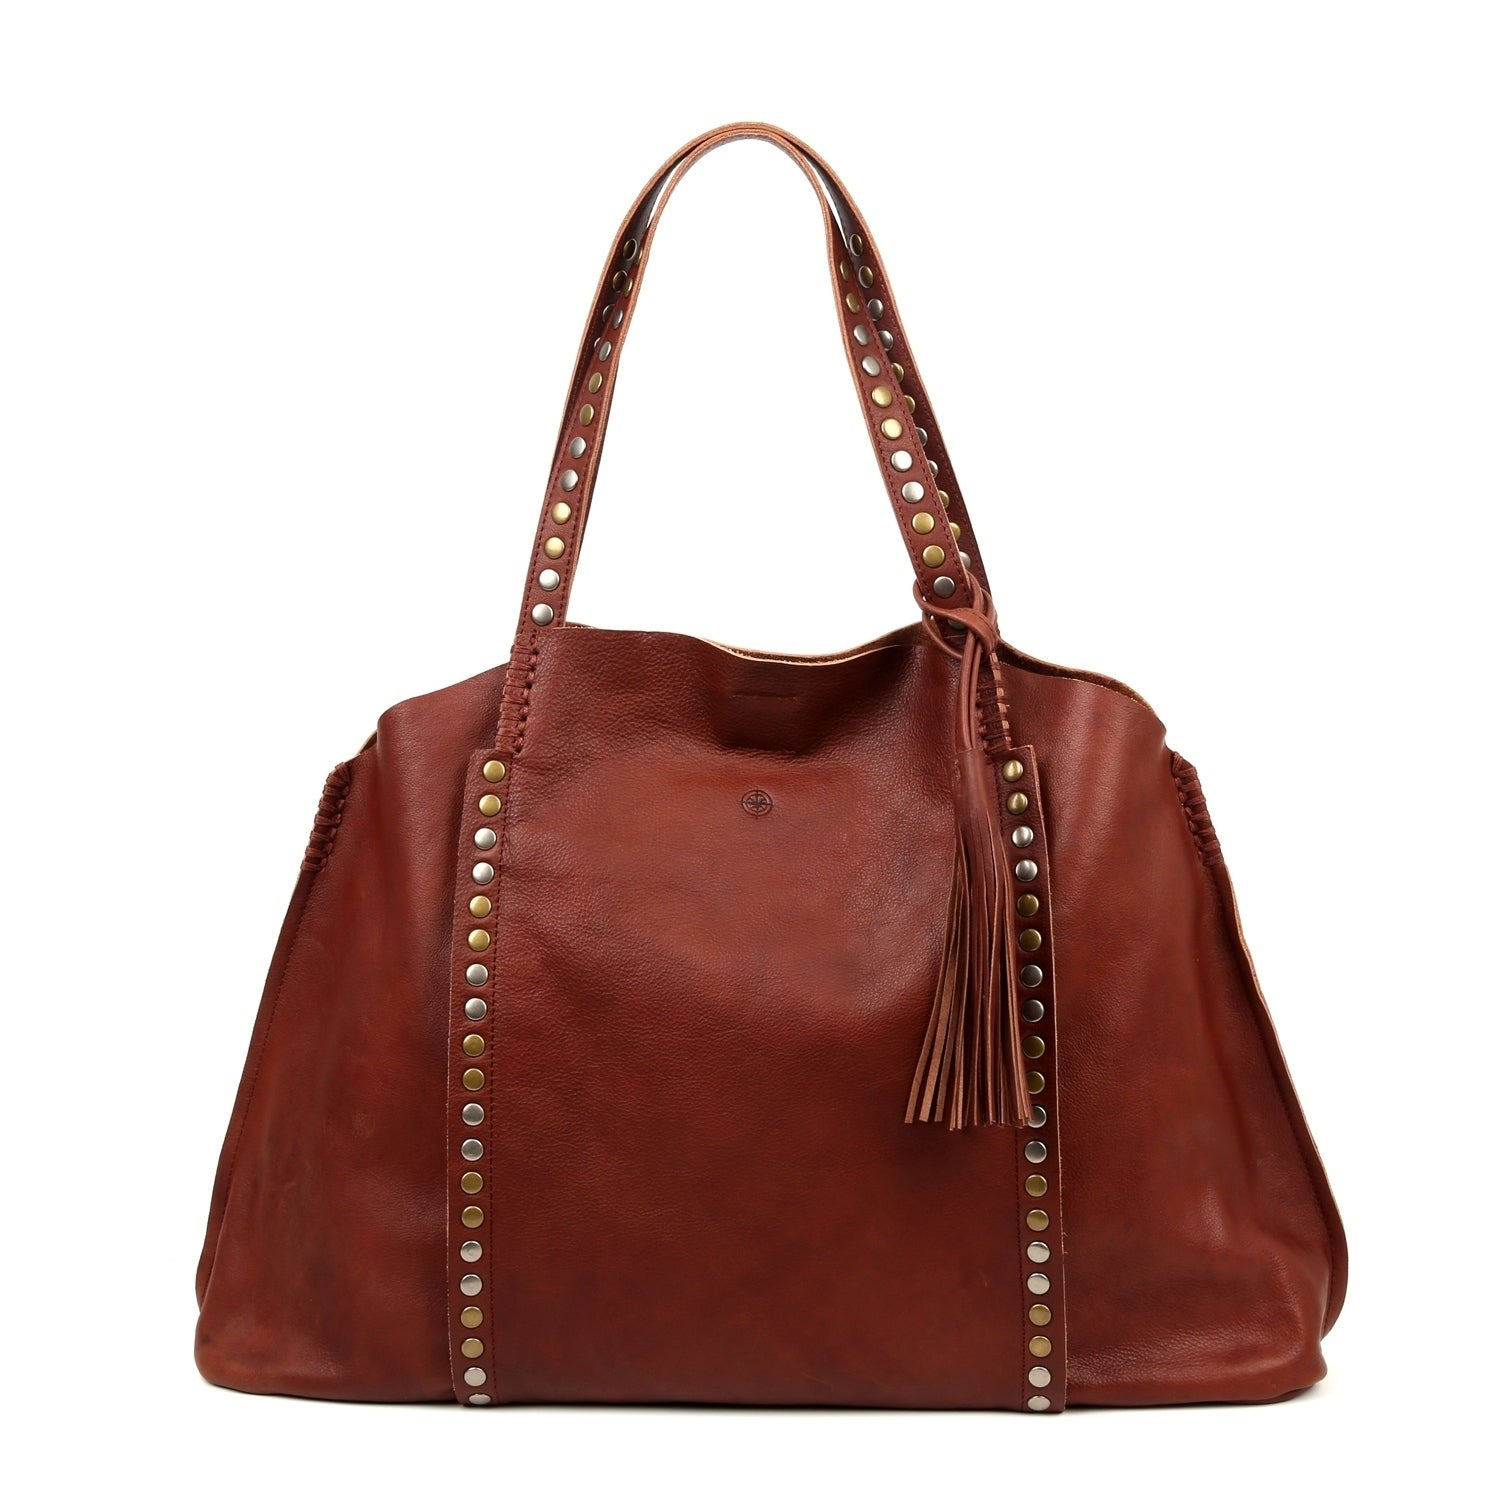 Brown Leather Bags Online At Our Best By Style Deals